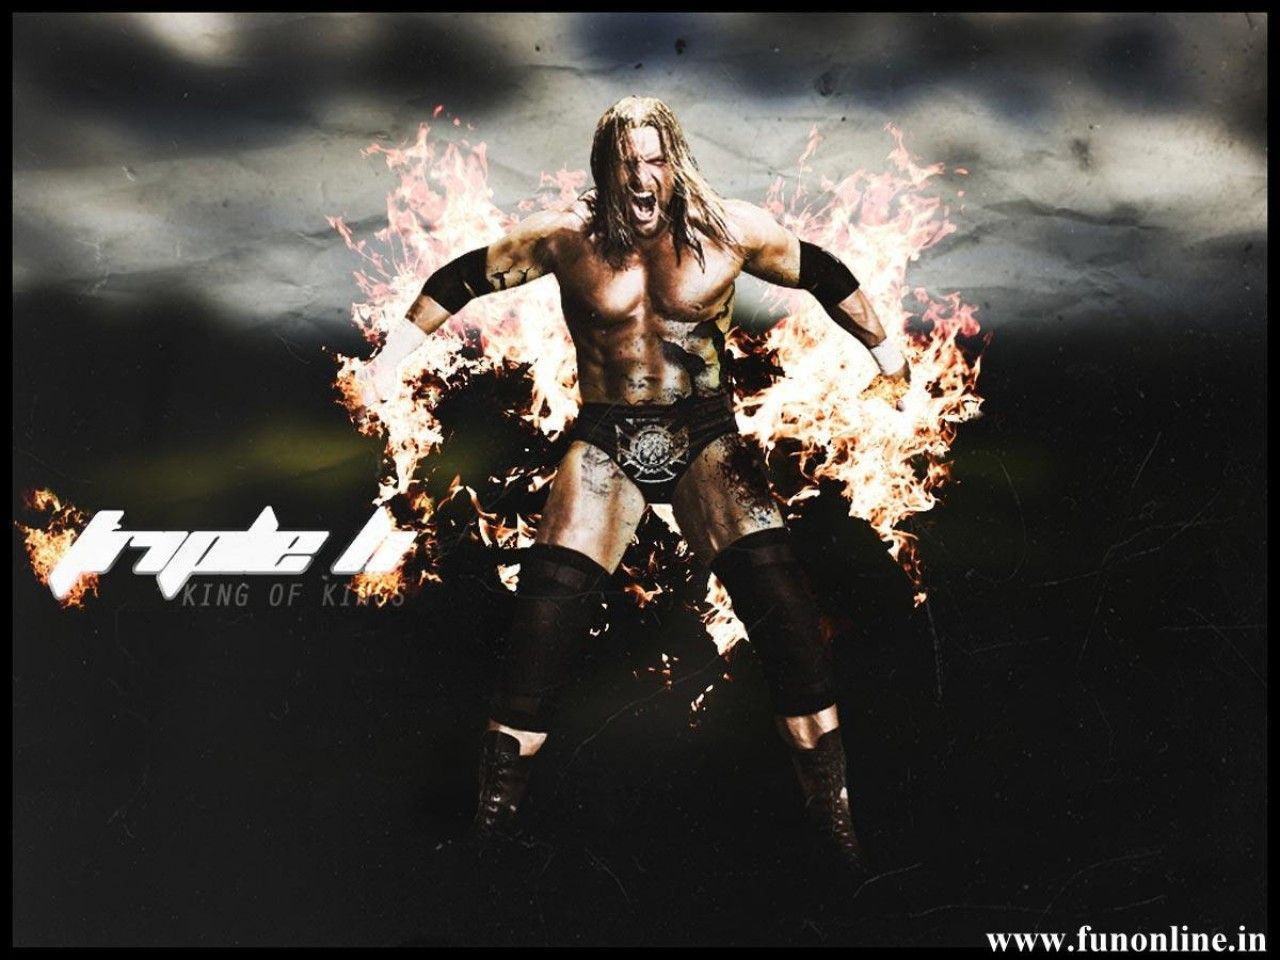 Nice Wallpapers With Quotes For Facebook Download Triple H King Of Kings Wallpaper Gallery